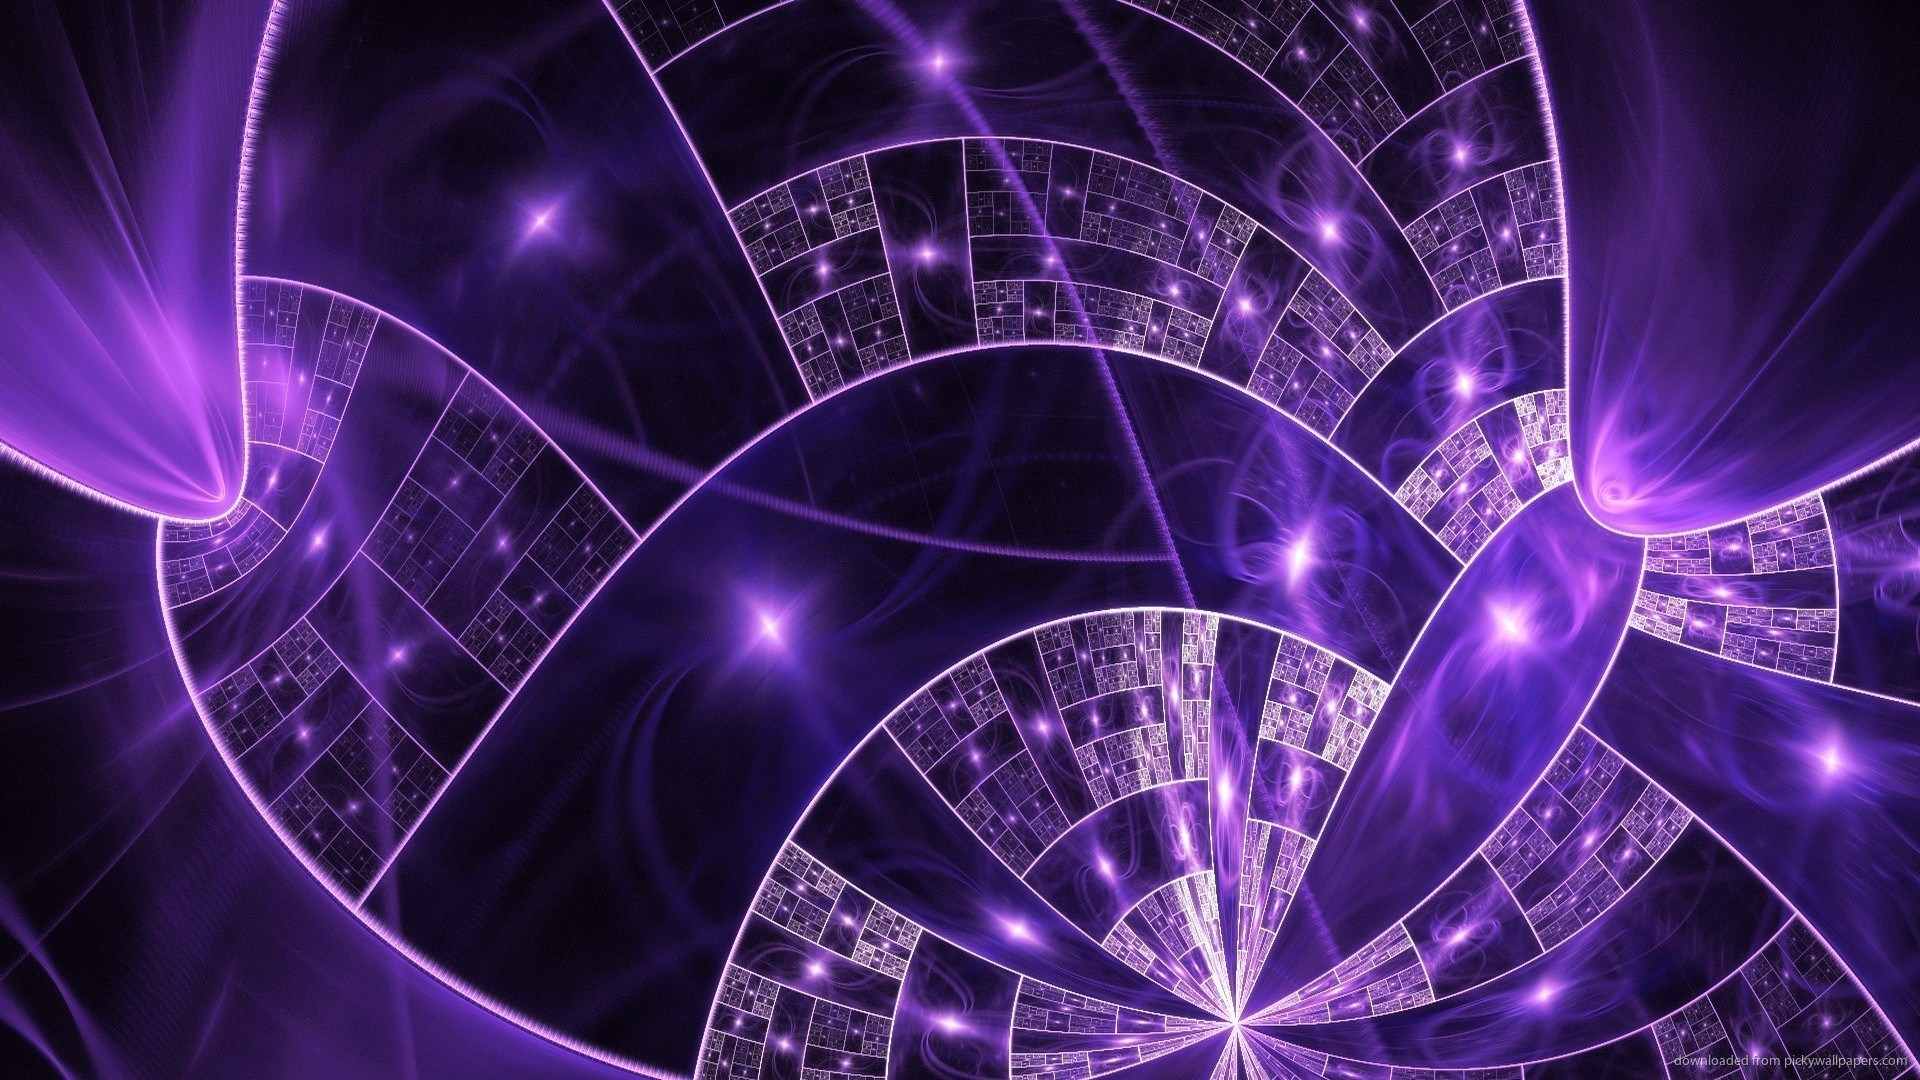 1920x1080 Abstract Purple Fractal Desktop Wallpaper picture